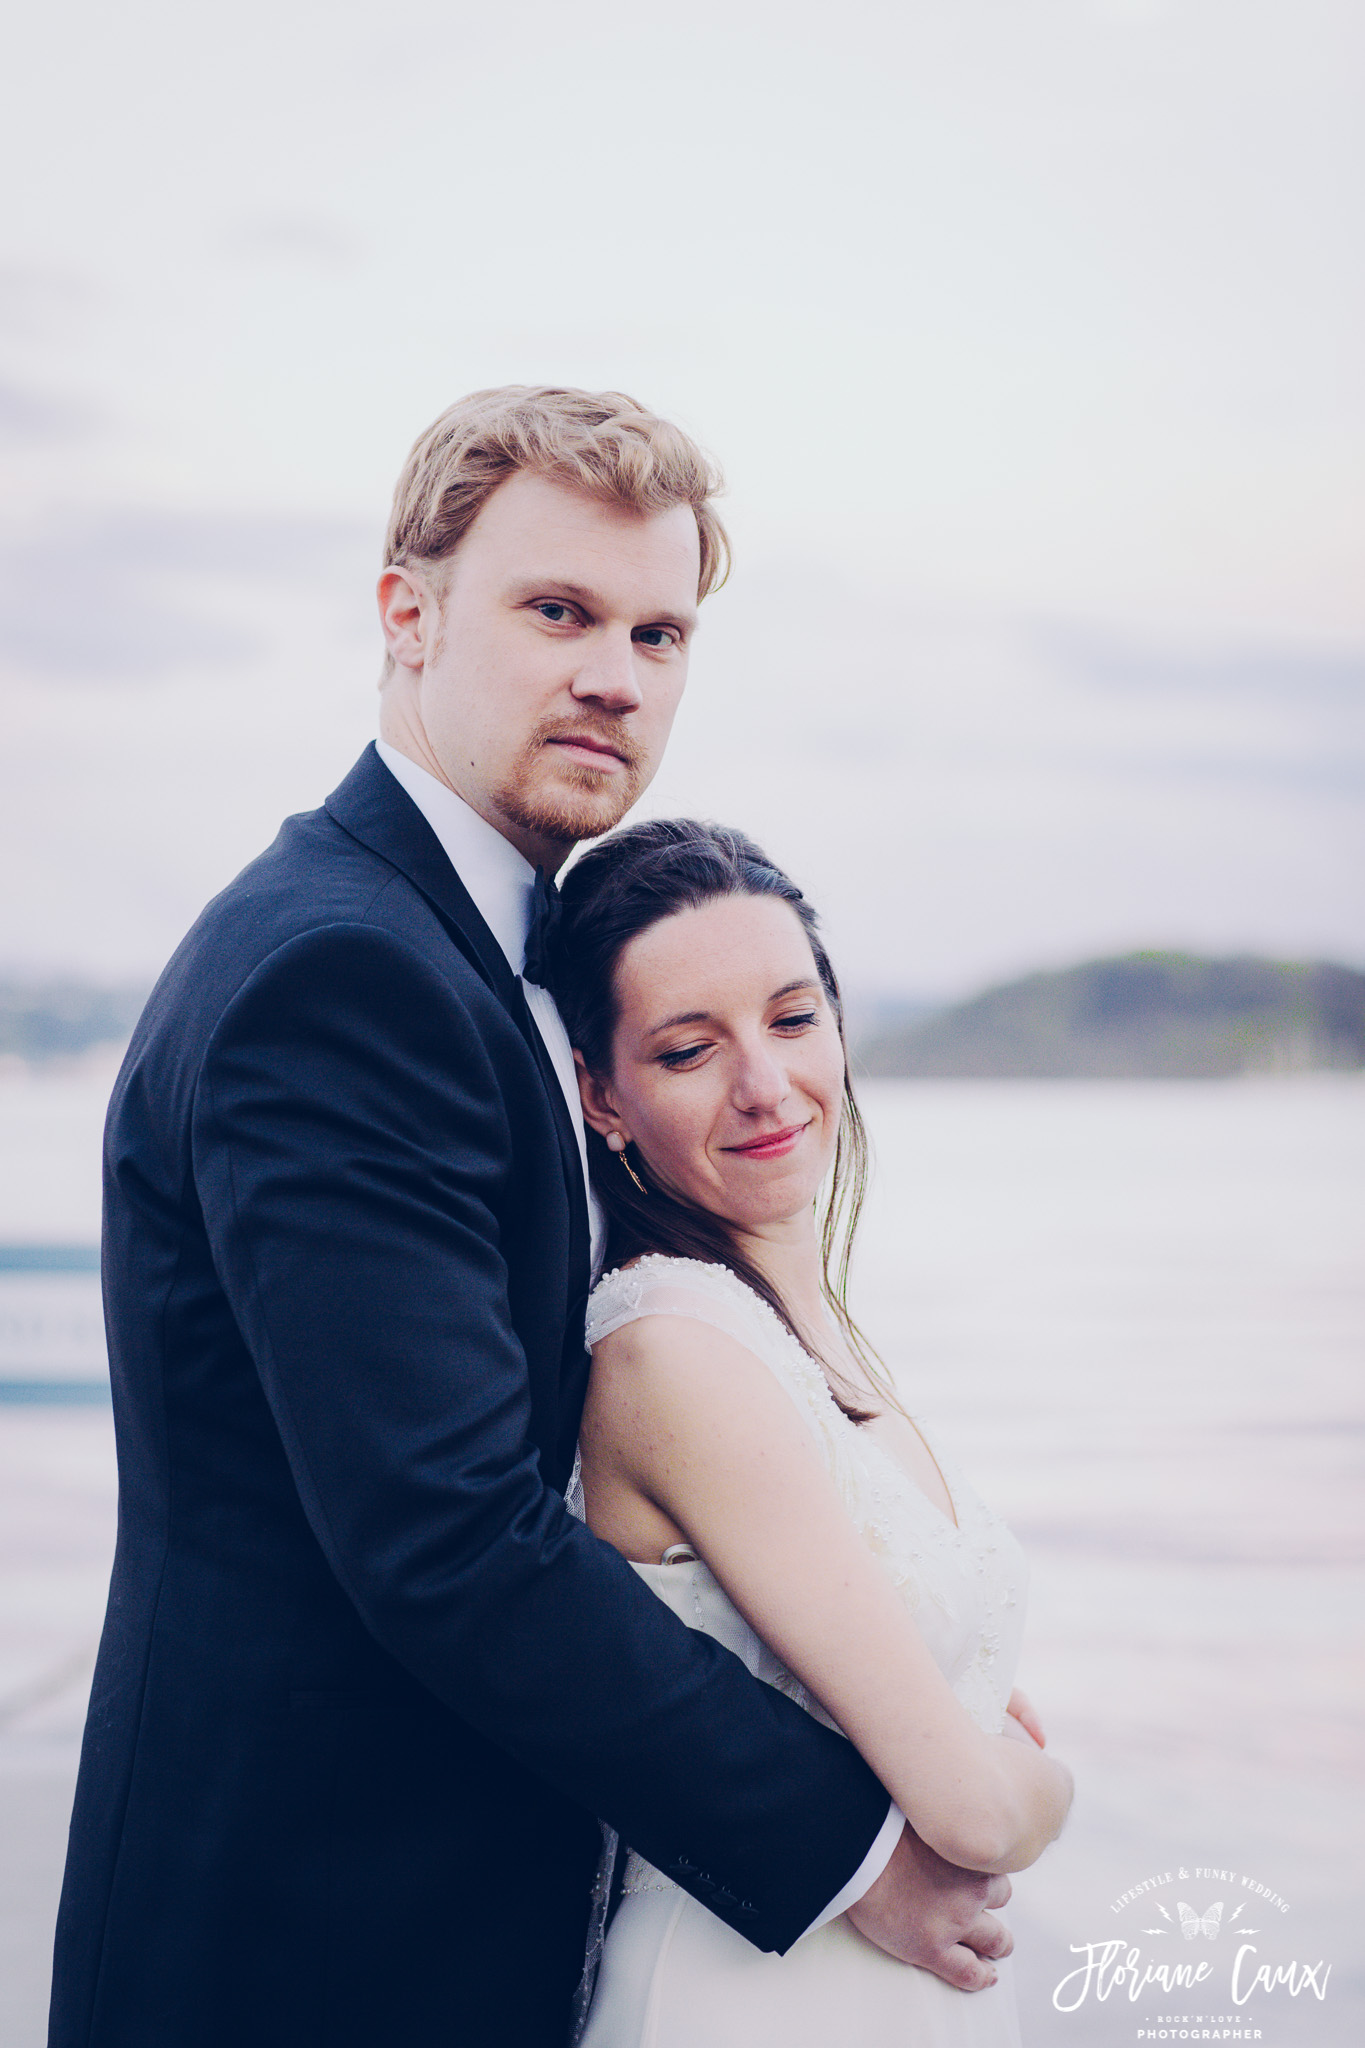 destination-wedding-photographer-oslo-norway-floriane-caux-52